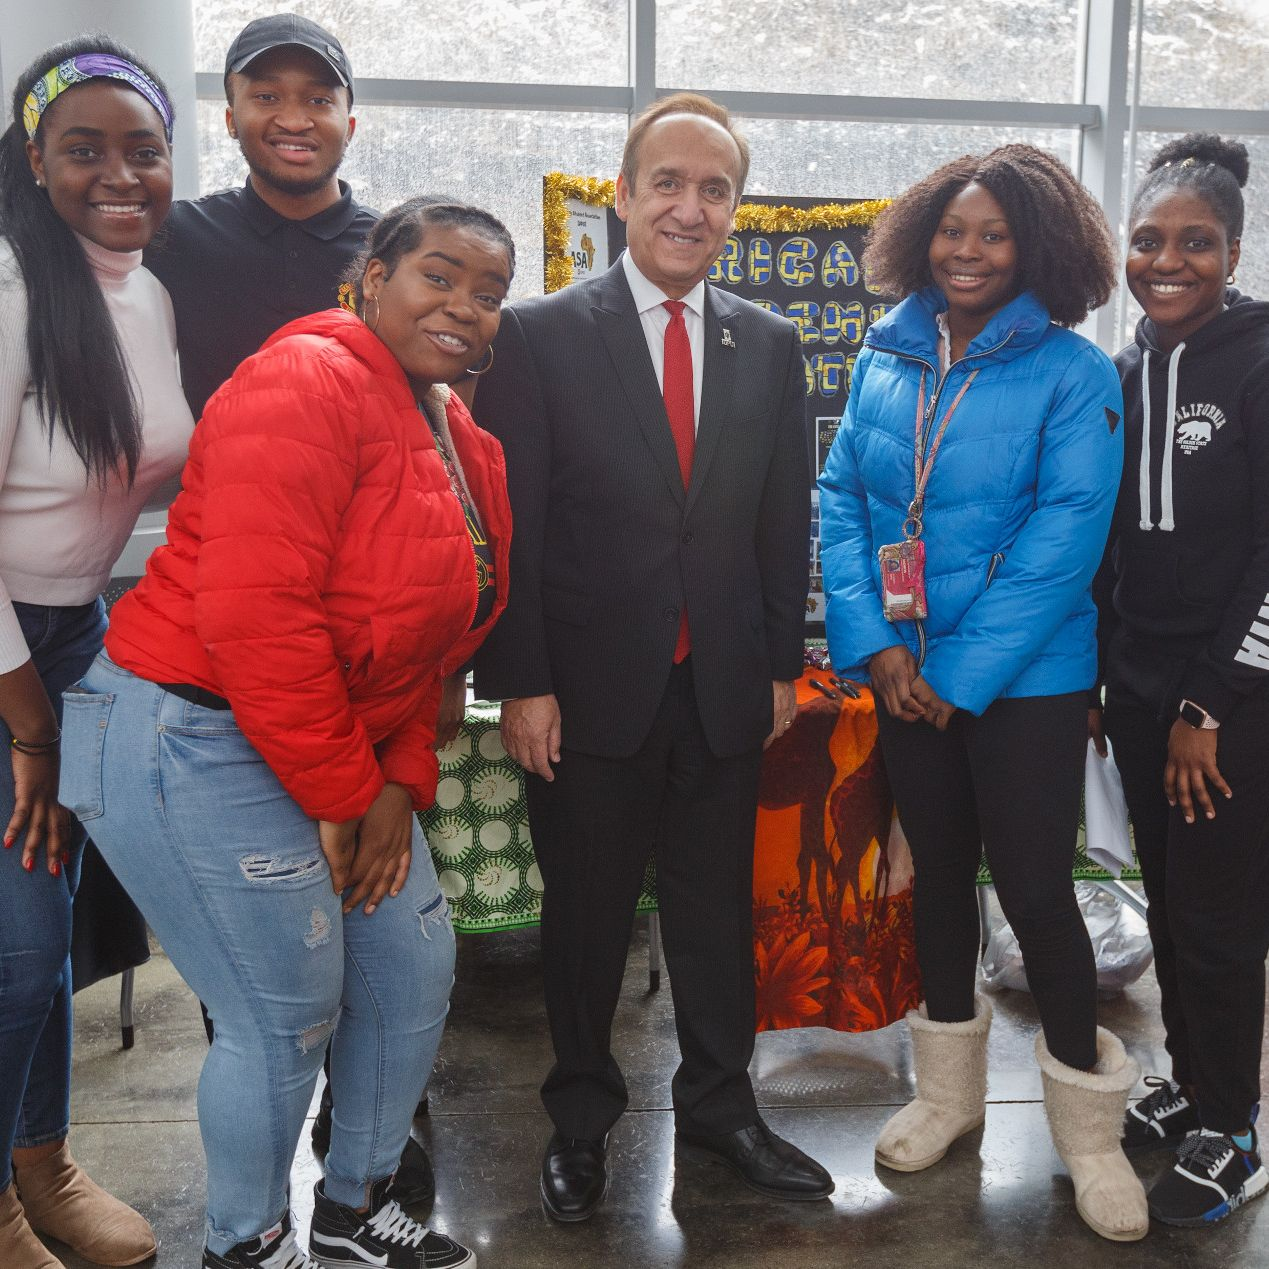 Chancellor Nasser Paydar poses with students